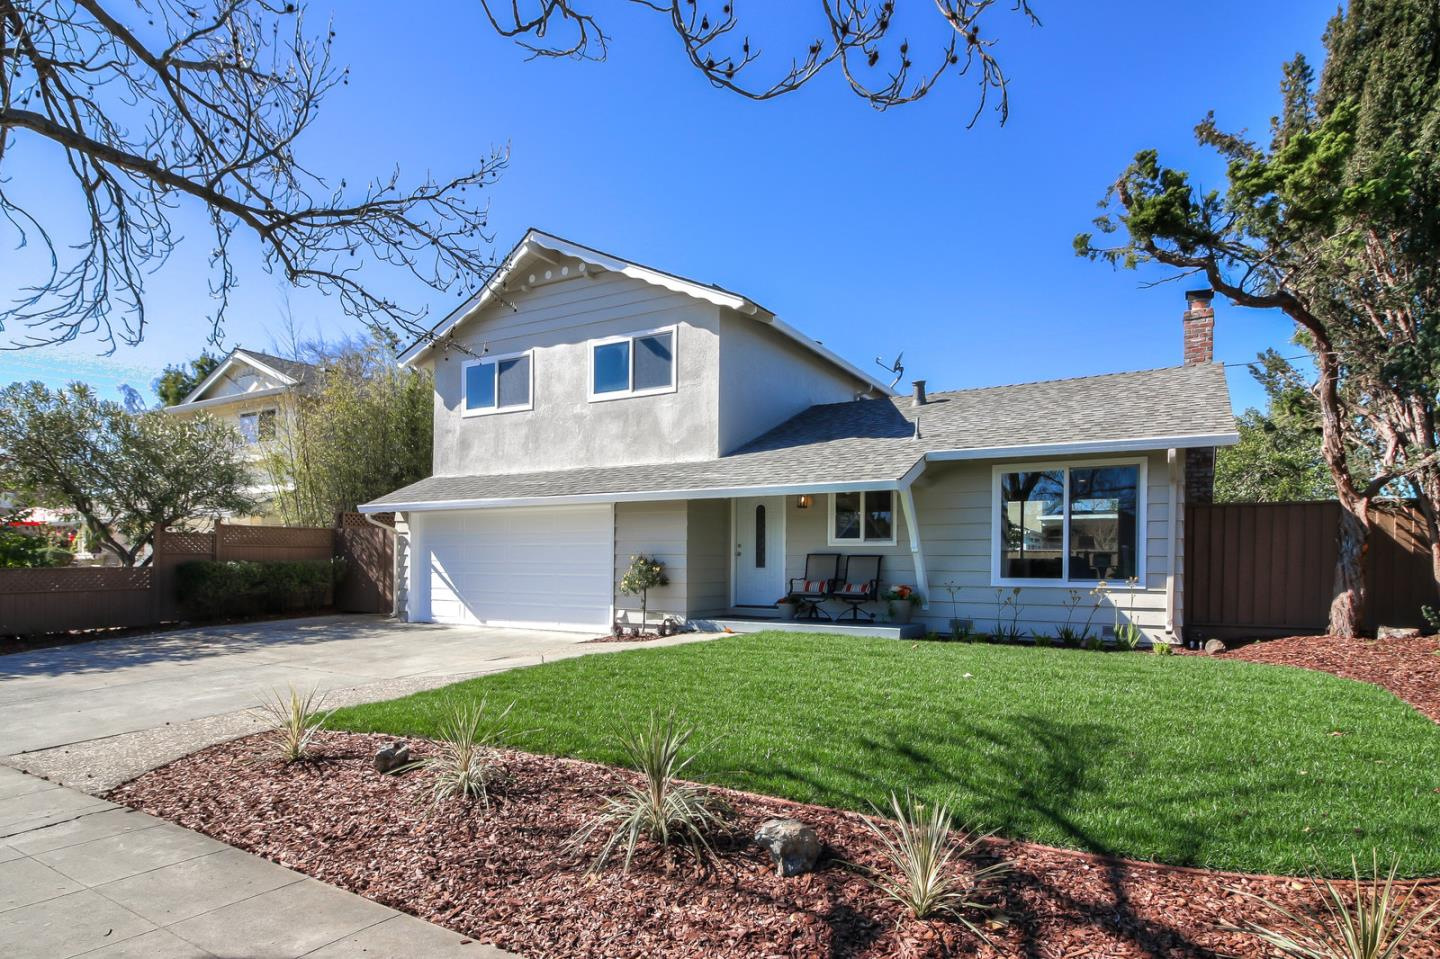 Detail Gallery Image 1 of 1 For 2941 Newark Way, San Jose, CA, 95124 - 3 Beds | 2/1 Baths